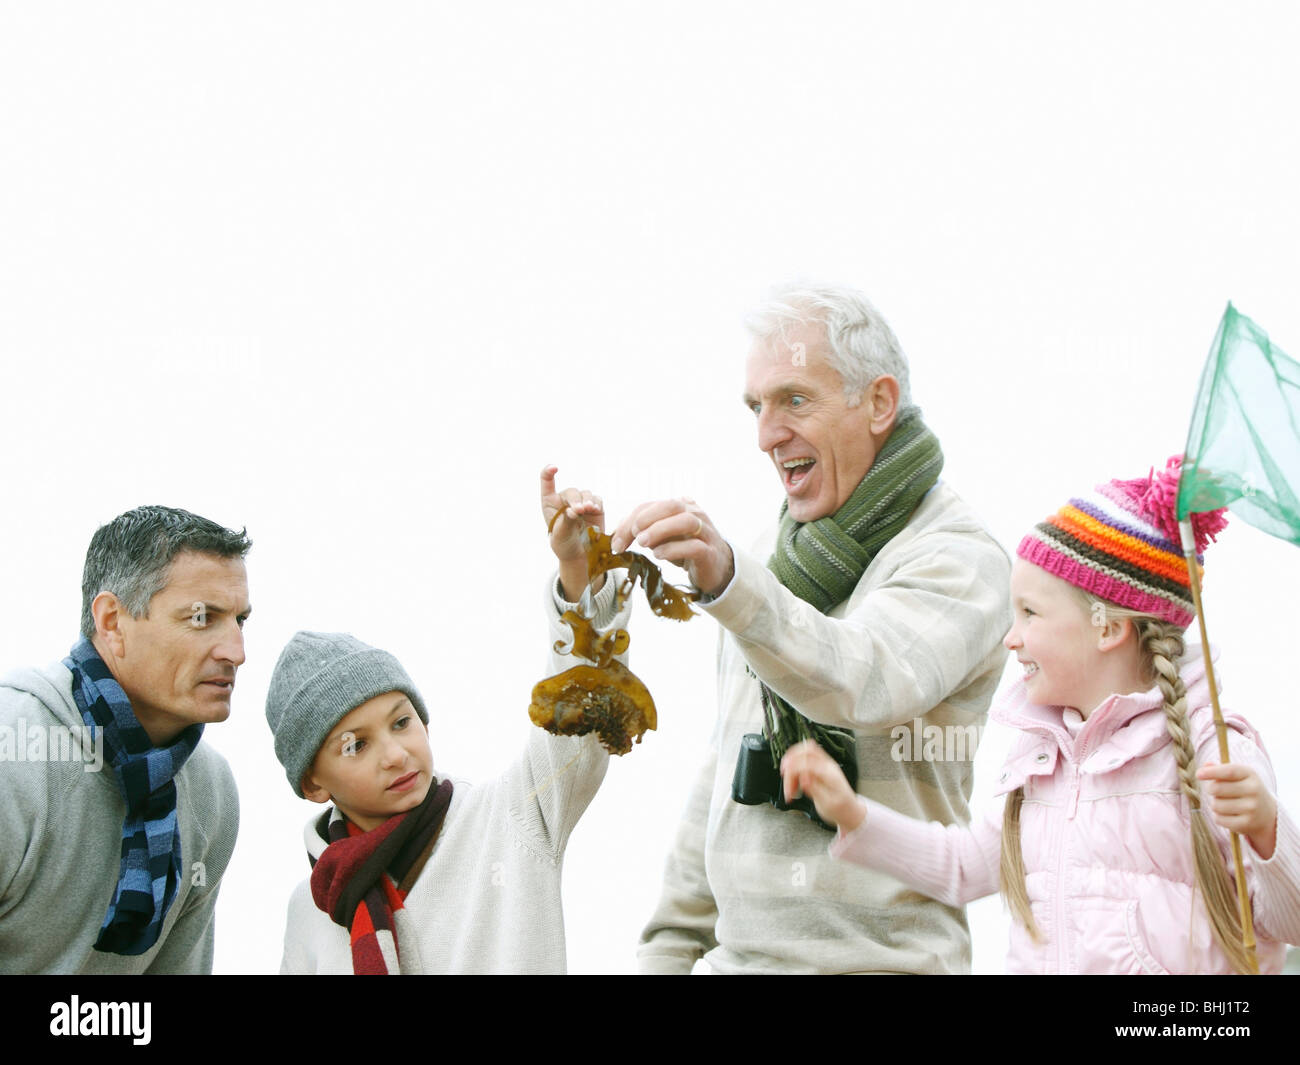 Generations Strolling on Beach - Stock Image